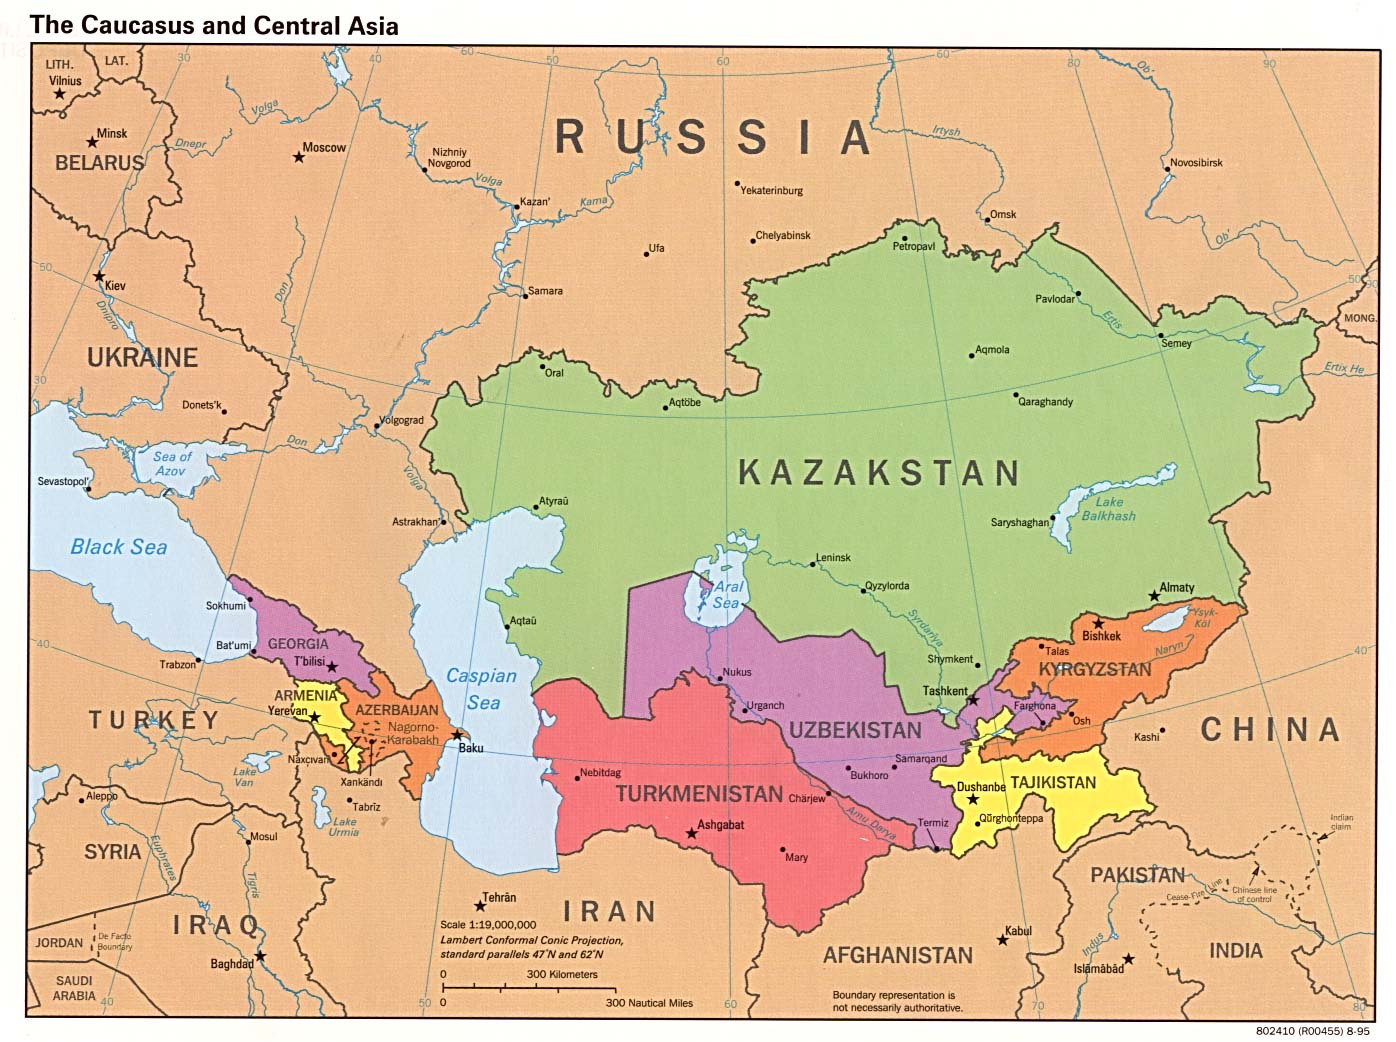 FileThe Caucasus And Central Asia Political Mapjpg Wikimedia - Central asia political map